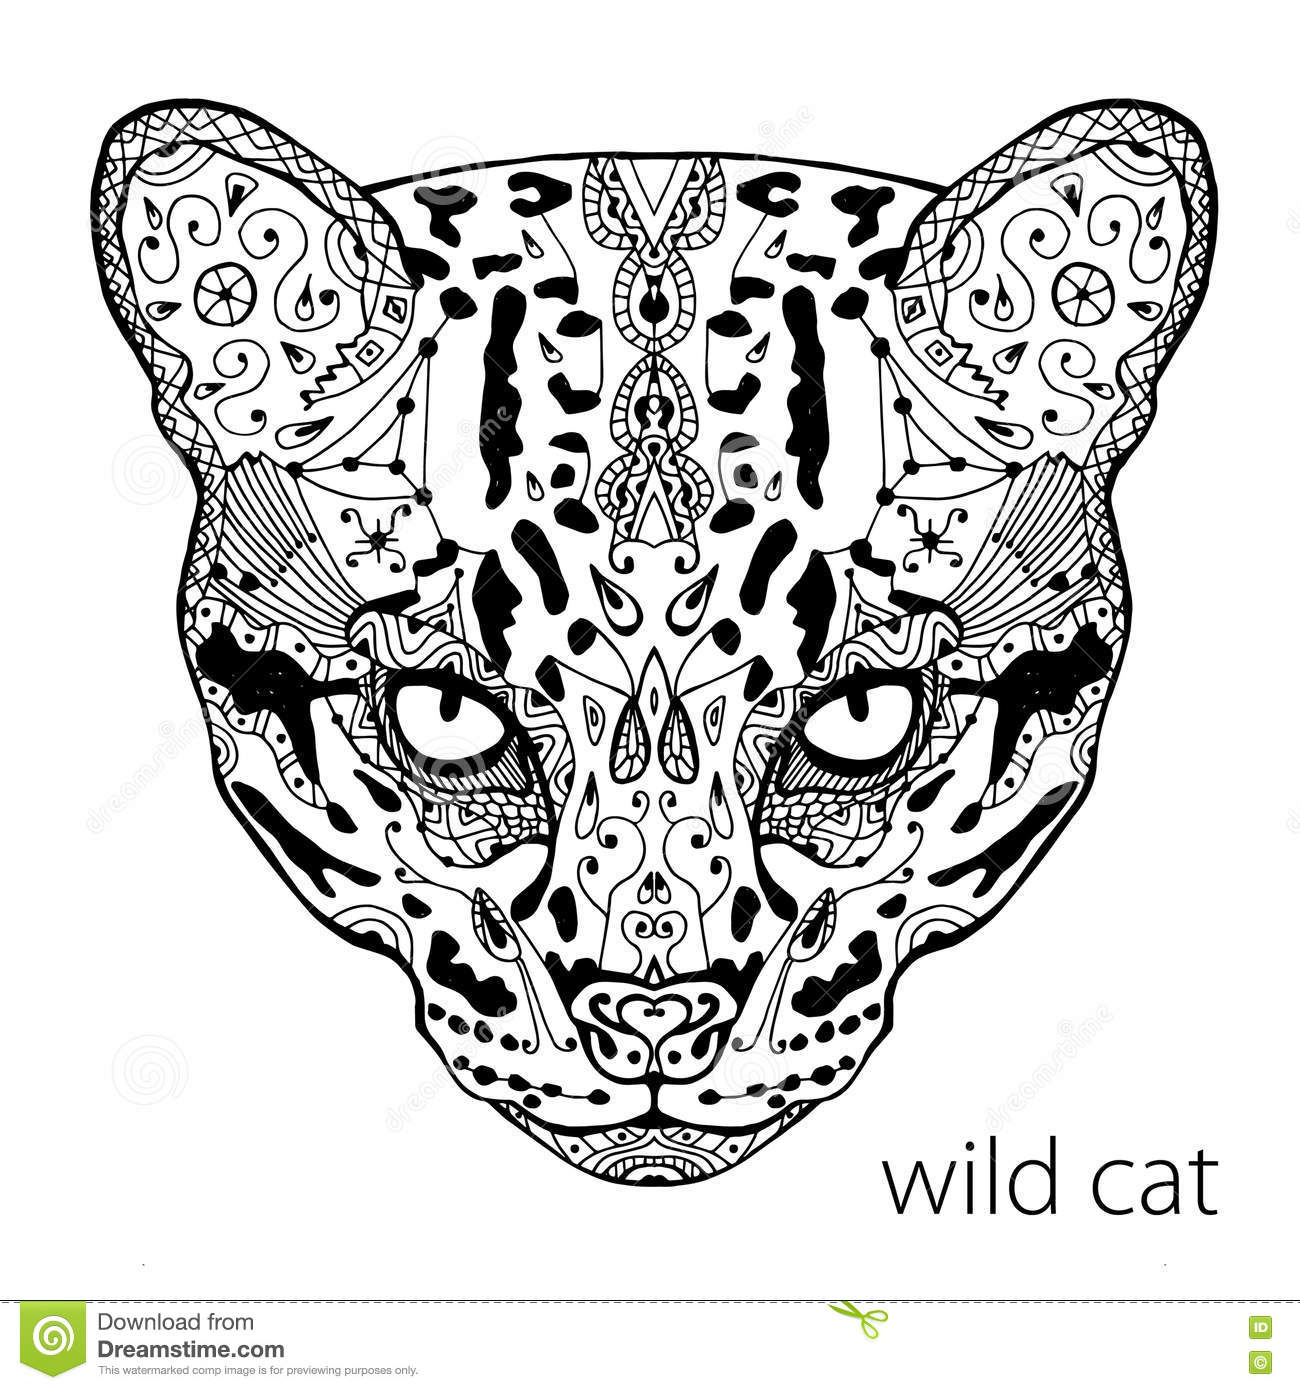 Coloring Antistress Strong Wild Cat Is Drawn By Hand With